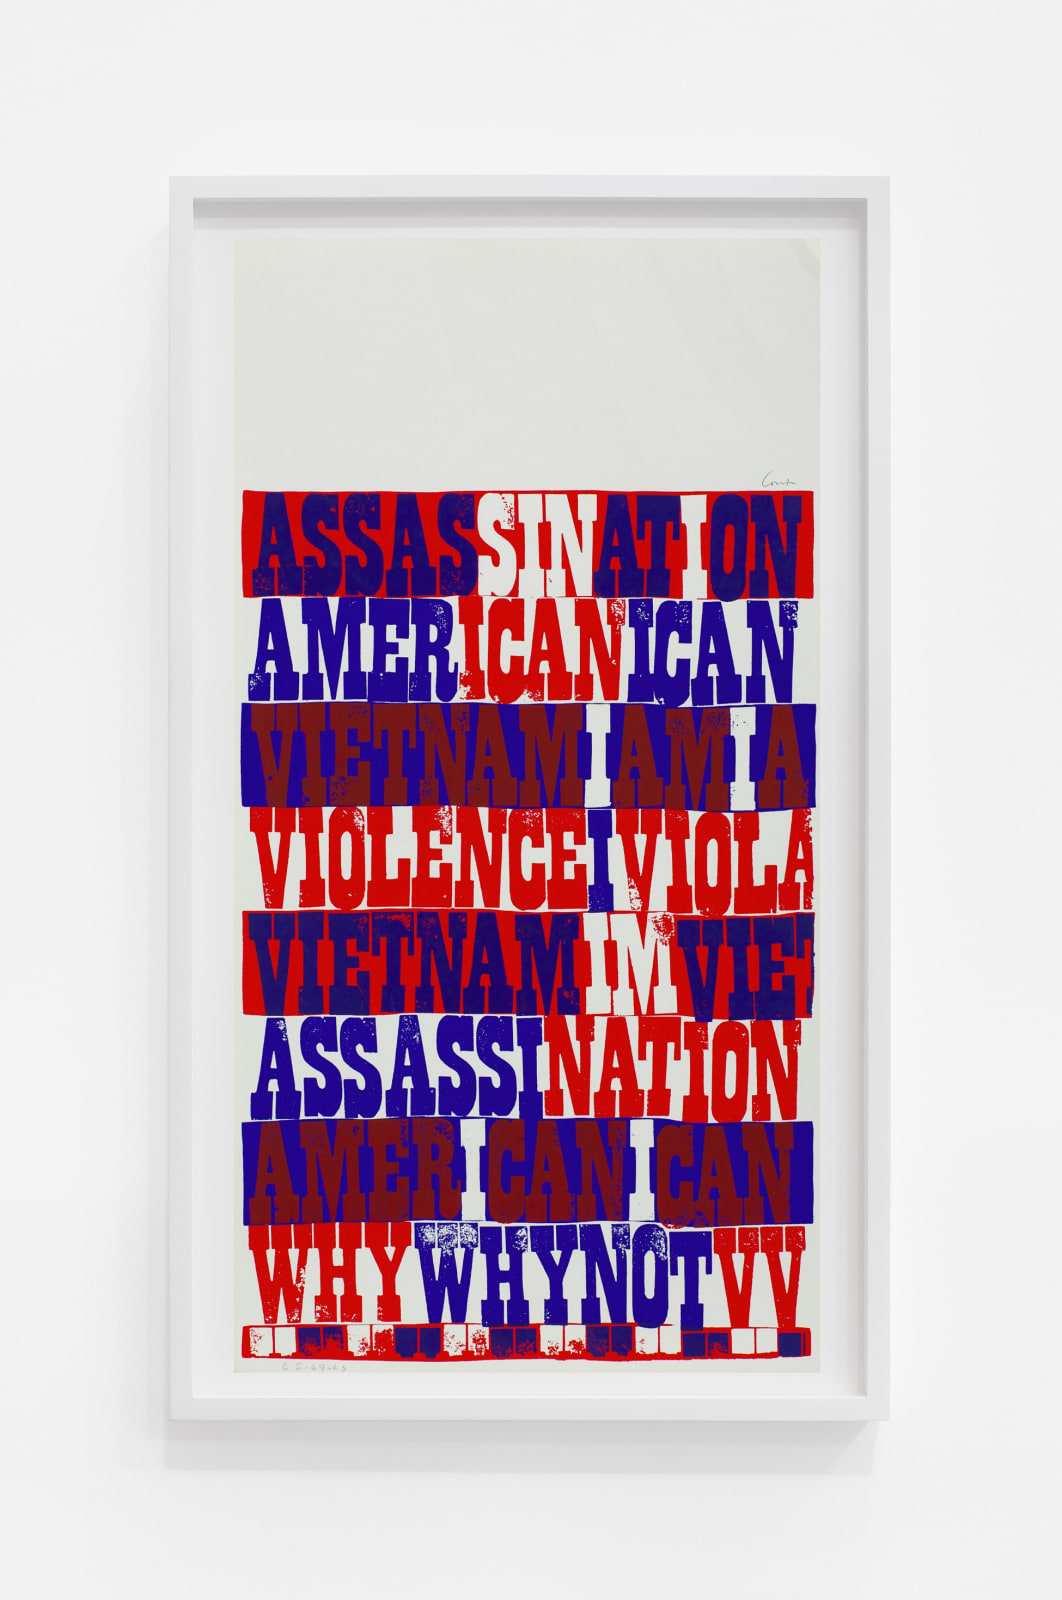 Corita Kent american sampler, 1969 Screenprint 22 1/2 x 11 1/2 in (57.2 x 29.2 cm) $6,000.00